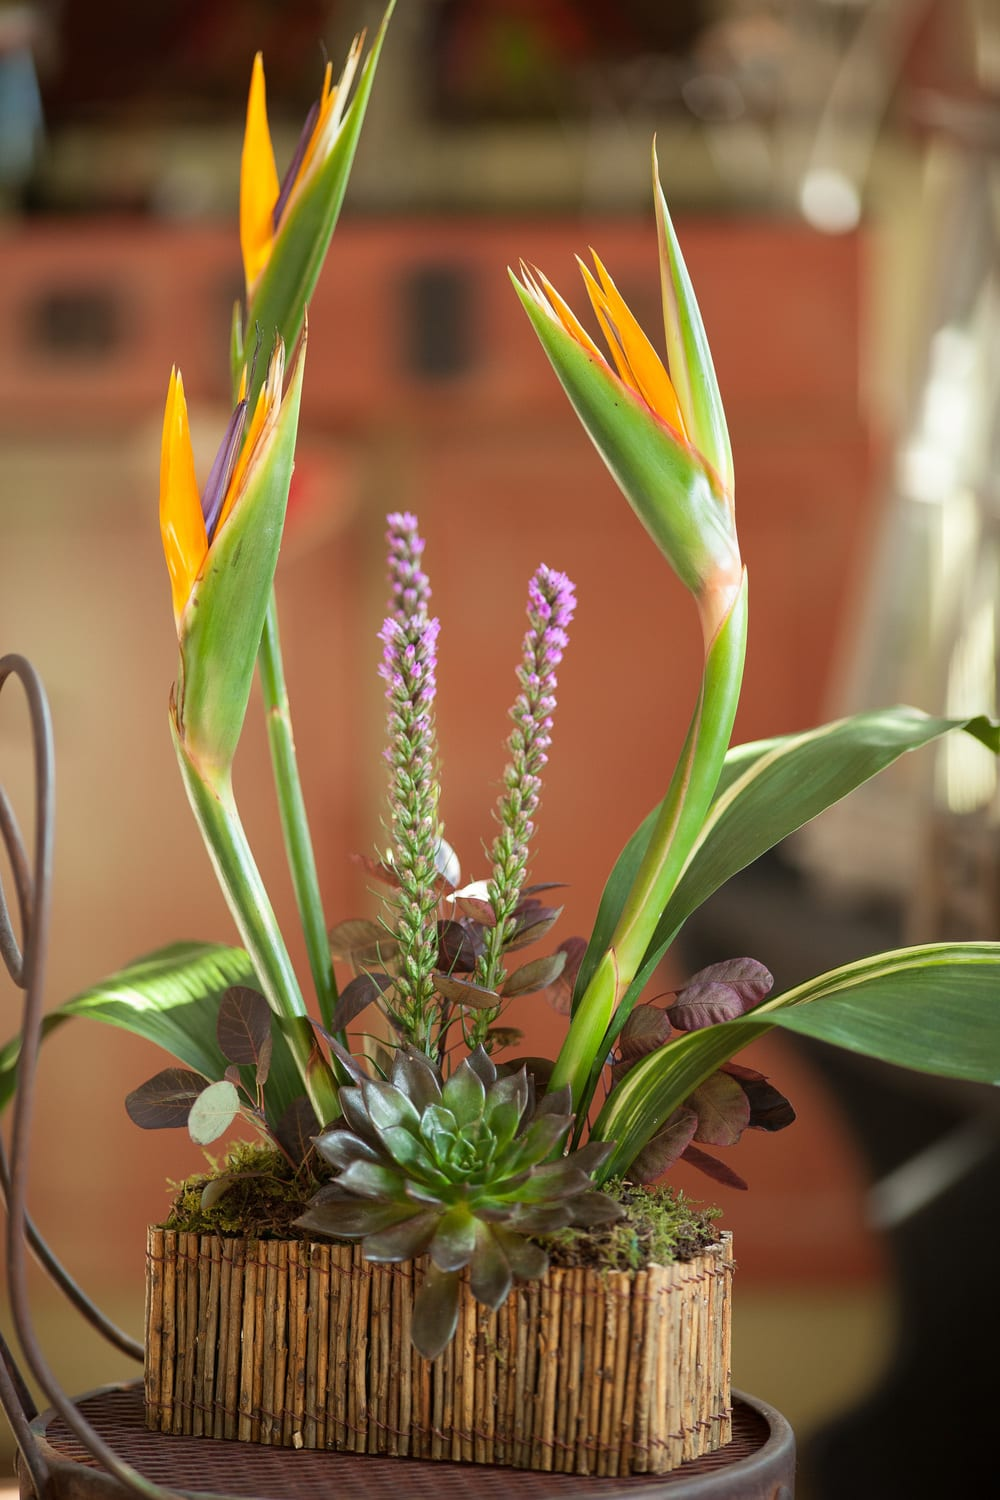 Maui. A contemporary tropical design in a low container. A striking gift for